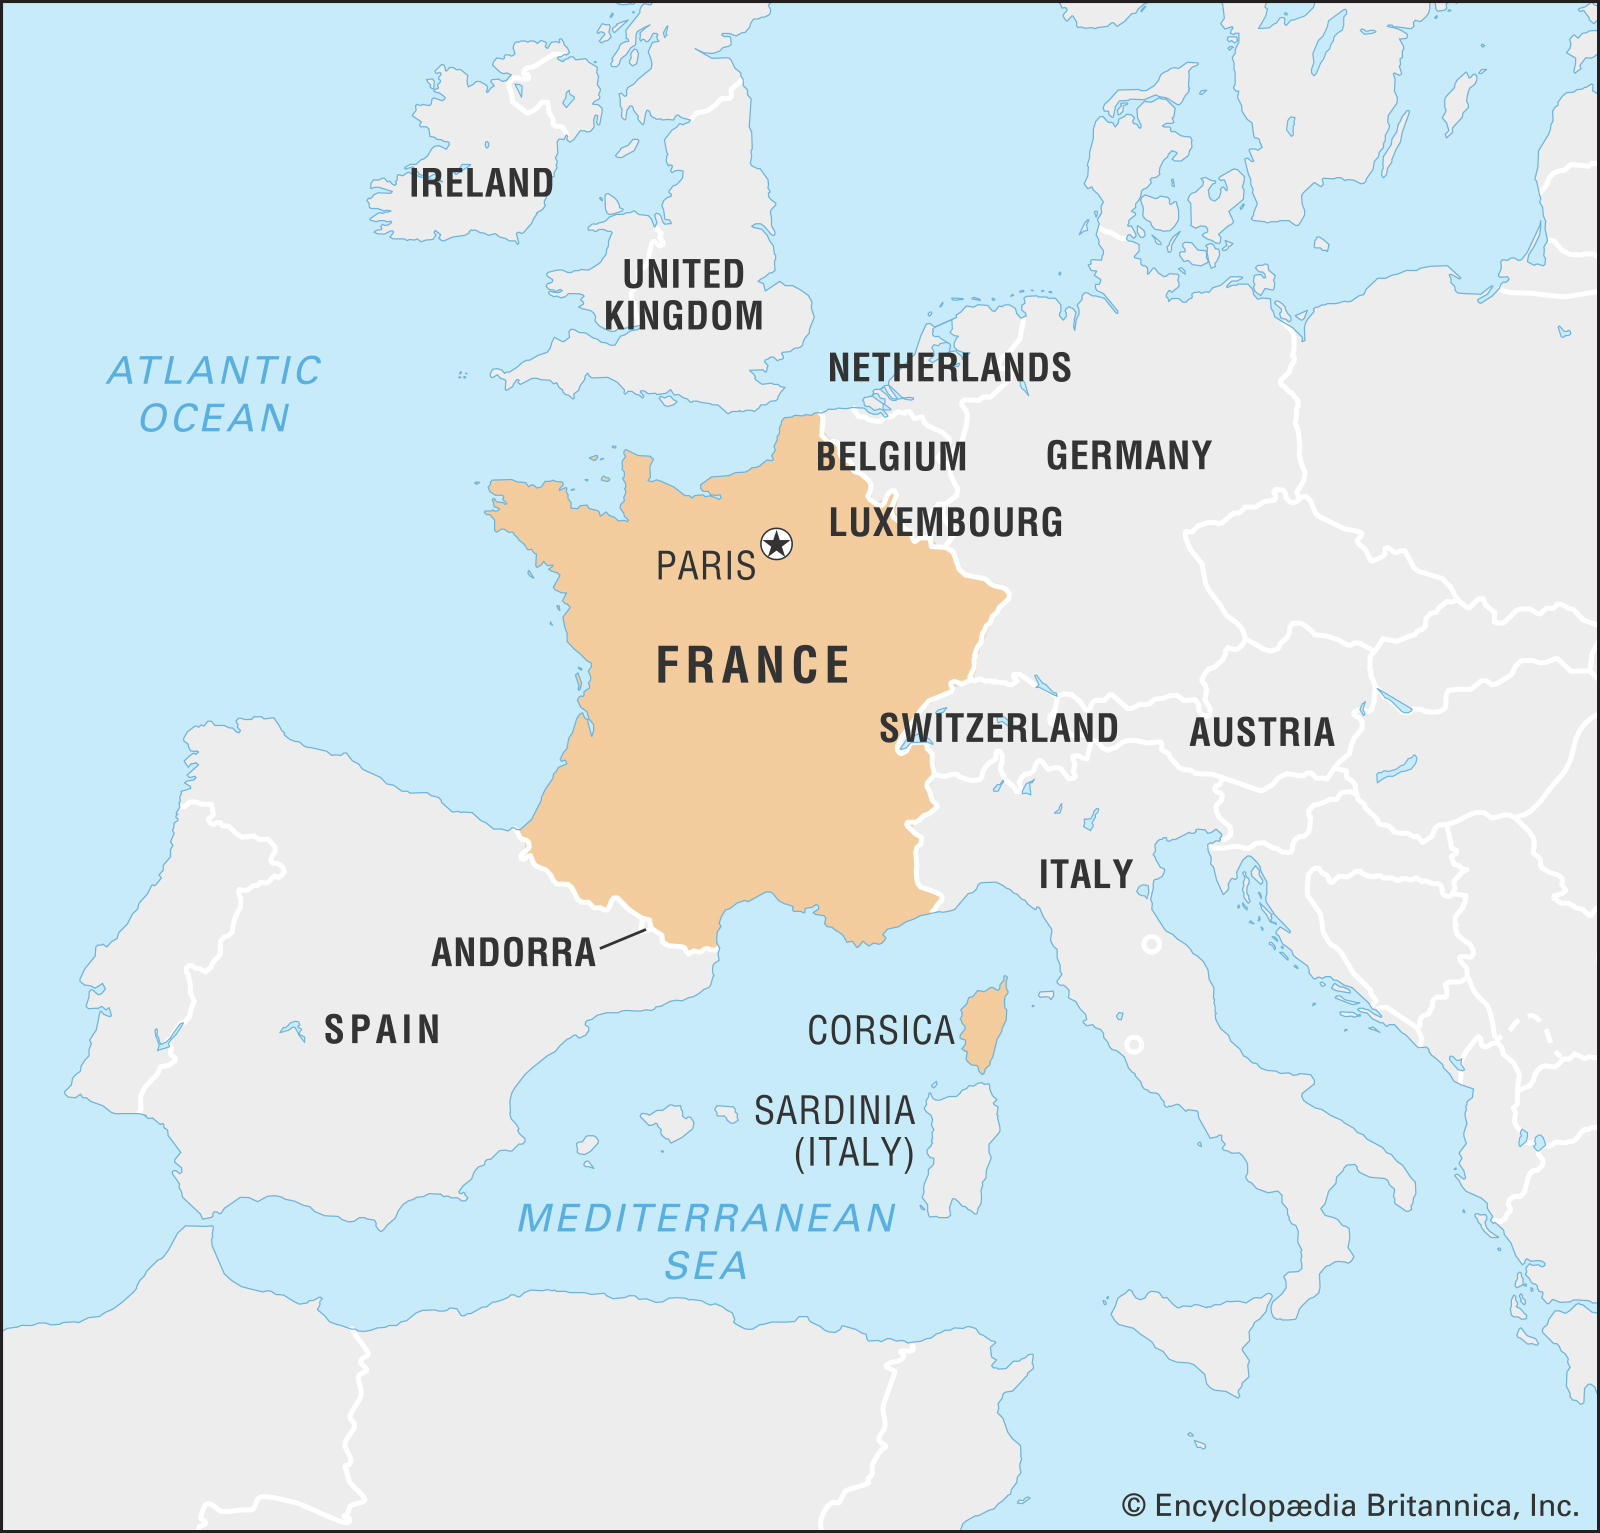 A map of France and nearby countries